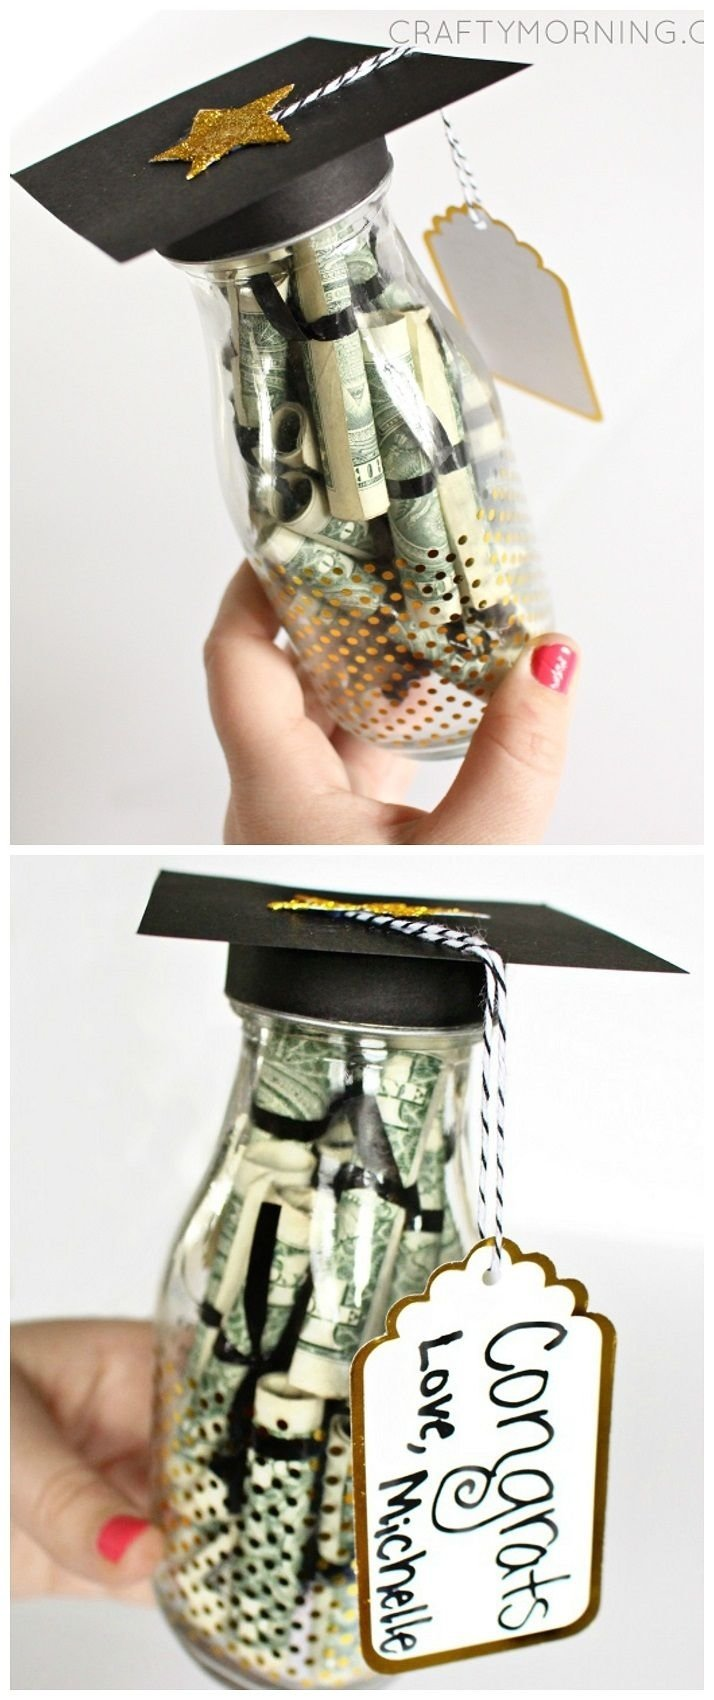 10 Attractive Gift Ideas For College Girls 393 best college student gift ideas images on pinterest college 8 2021